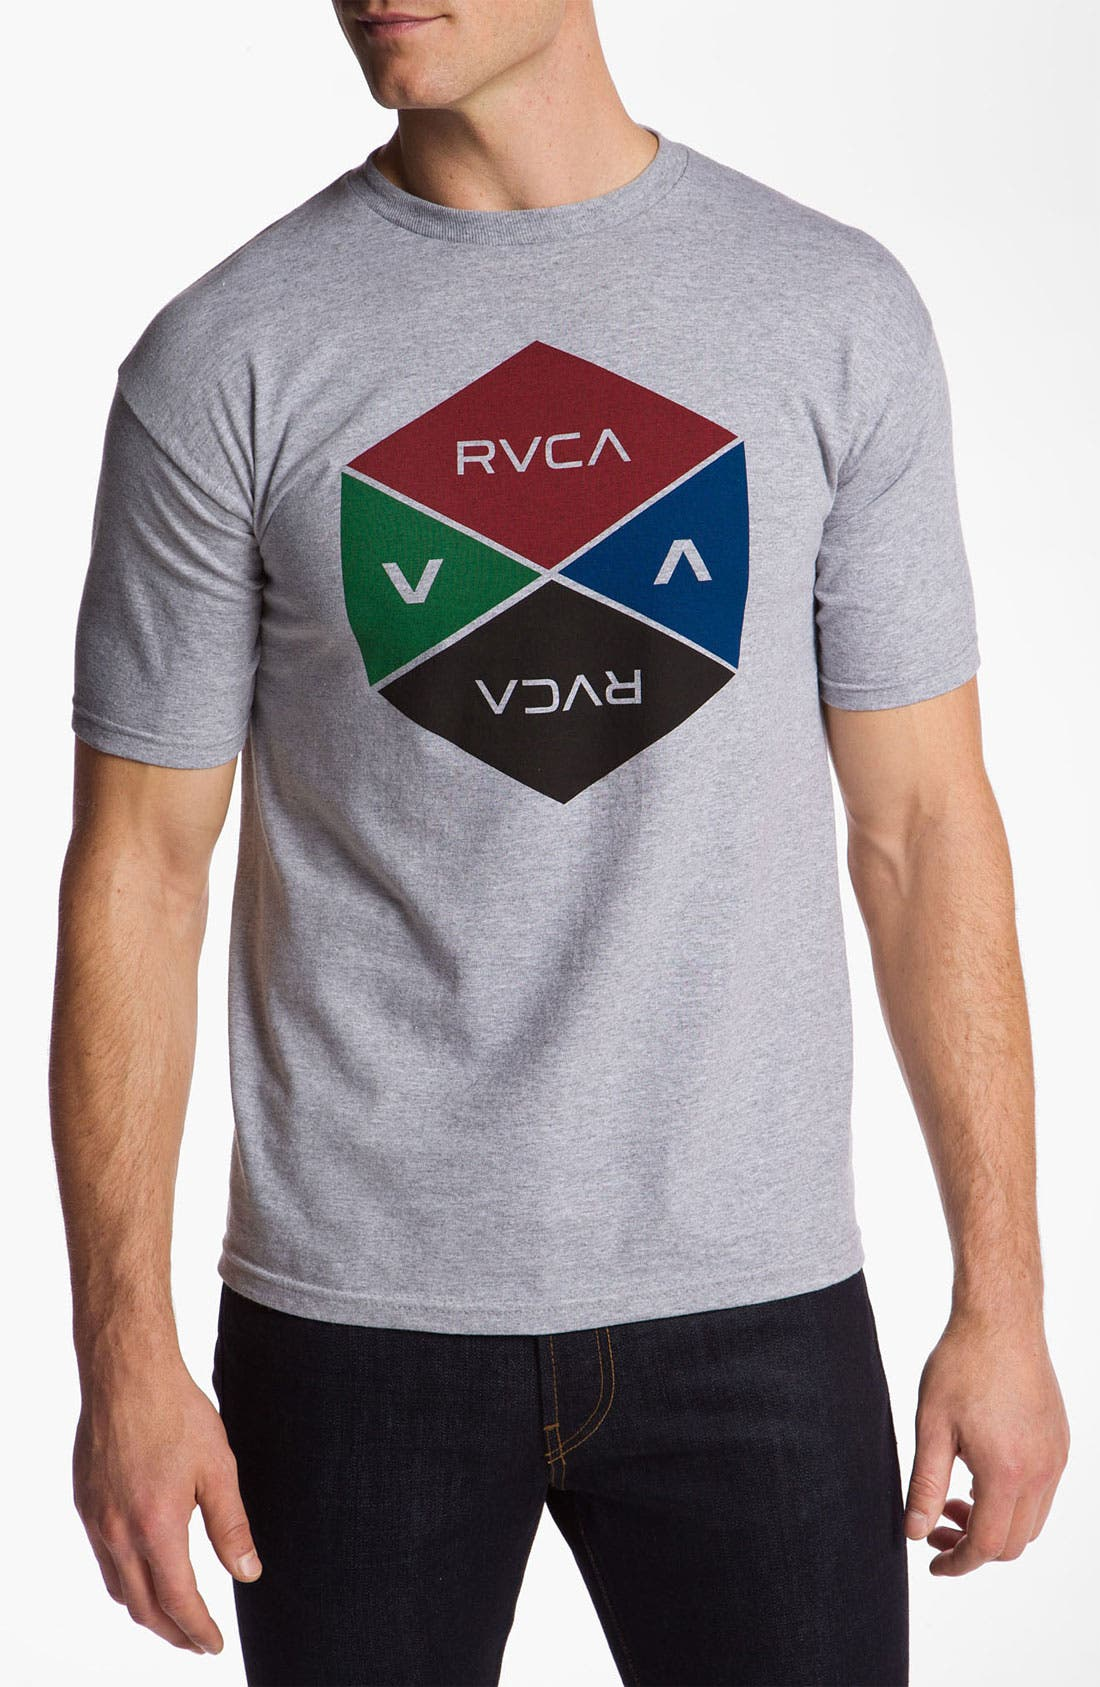 Alternate Image 1 Selected - RVCA 'Hexy' T-Shirt